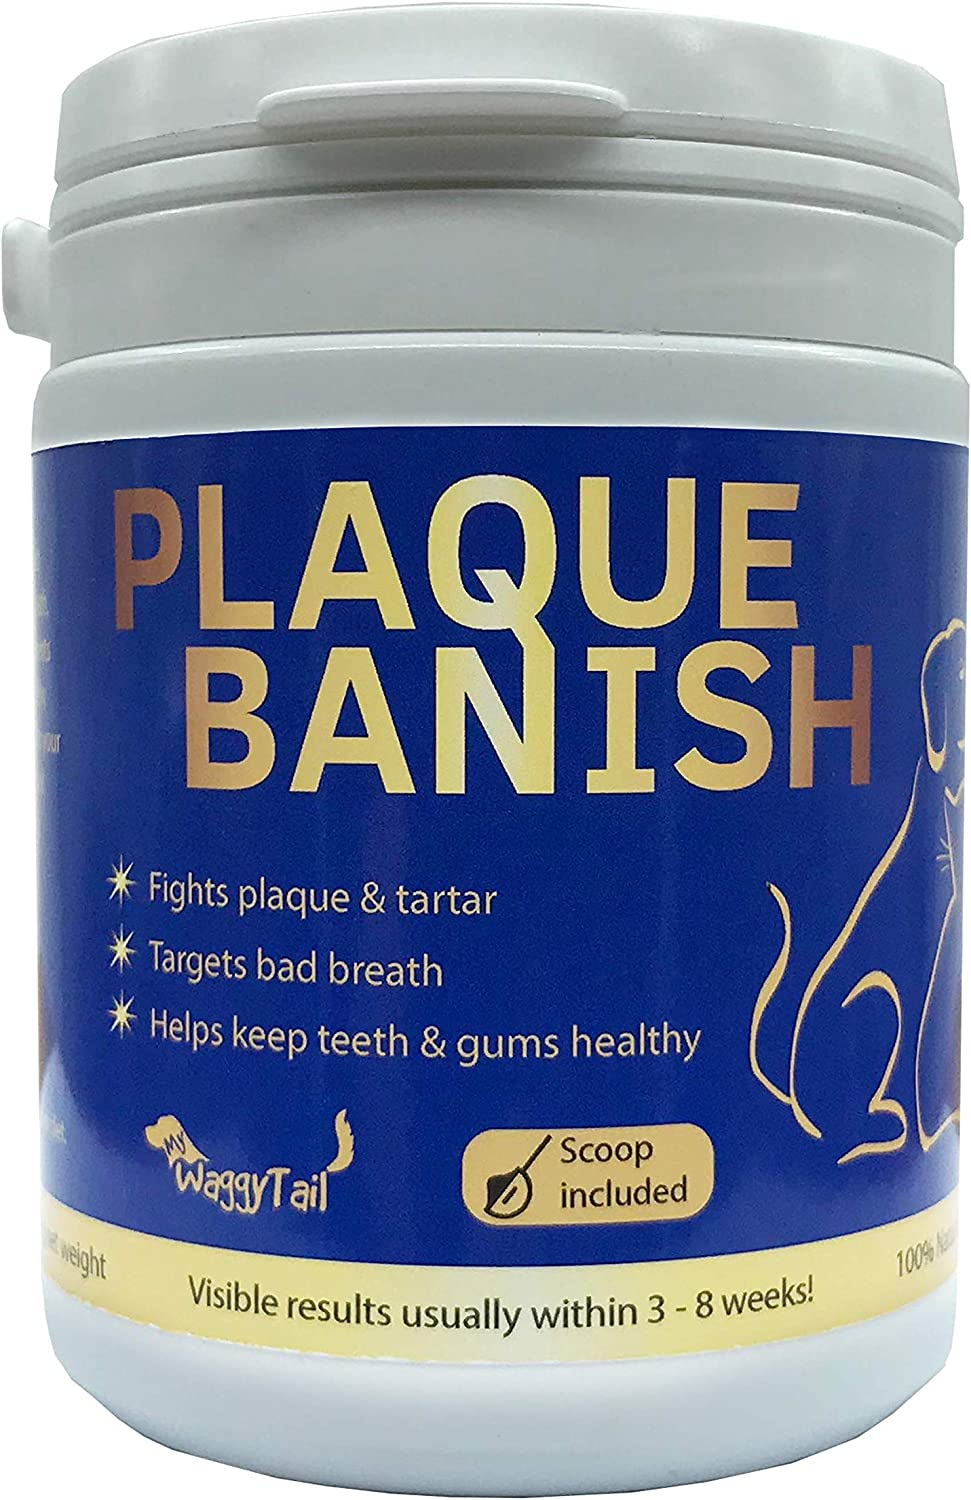 Plaque Banish 100% Natural Plaque Off & Tartar Remover For Dogs & Cats | Freshen Breath For Dogs & Cats | 6.3oz (180g) | Support Healthy Gums & Promote Dental Health | Prevent Plaque & Tartar Build Up